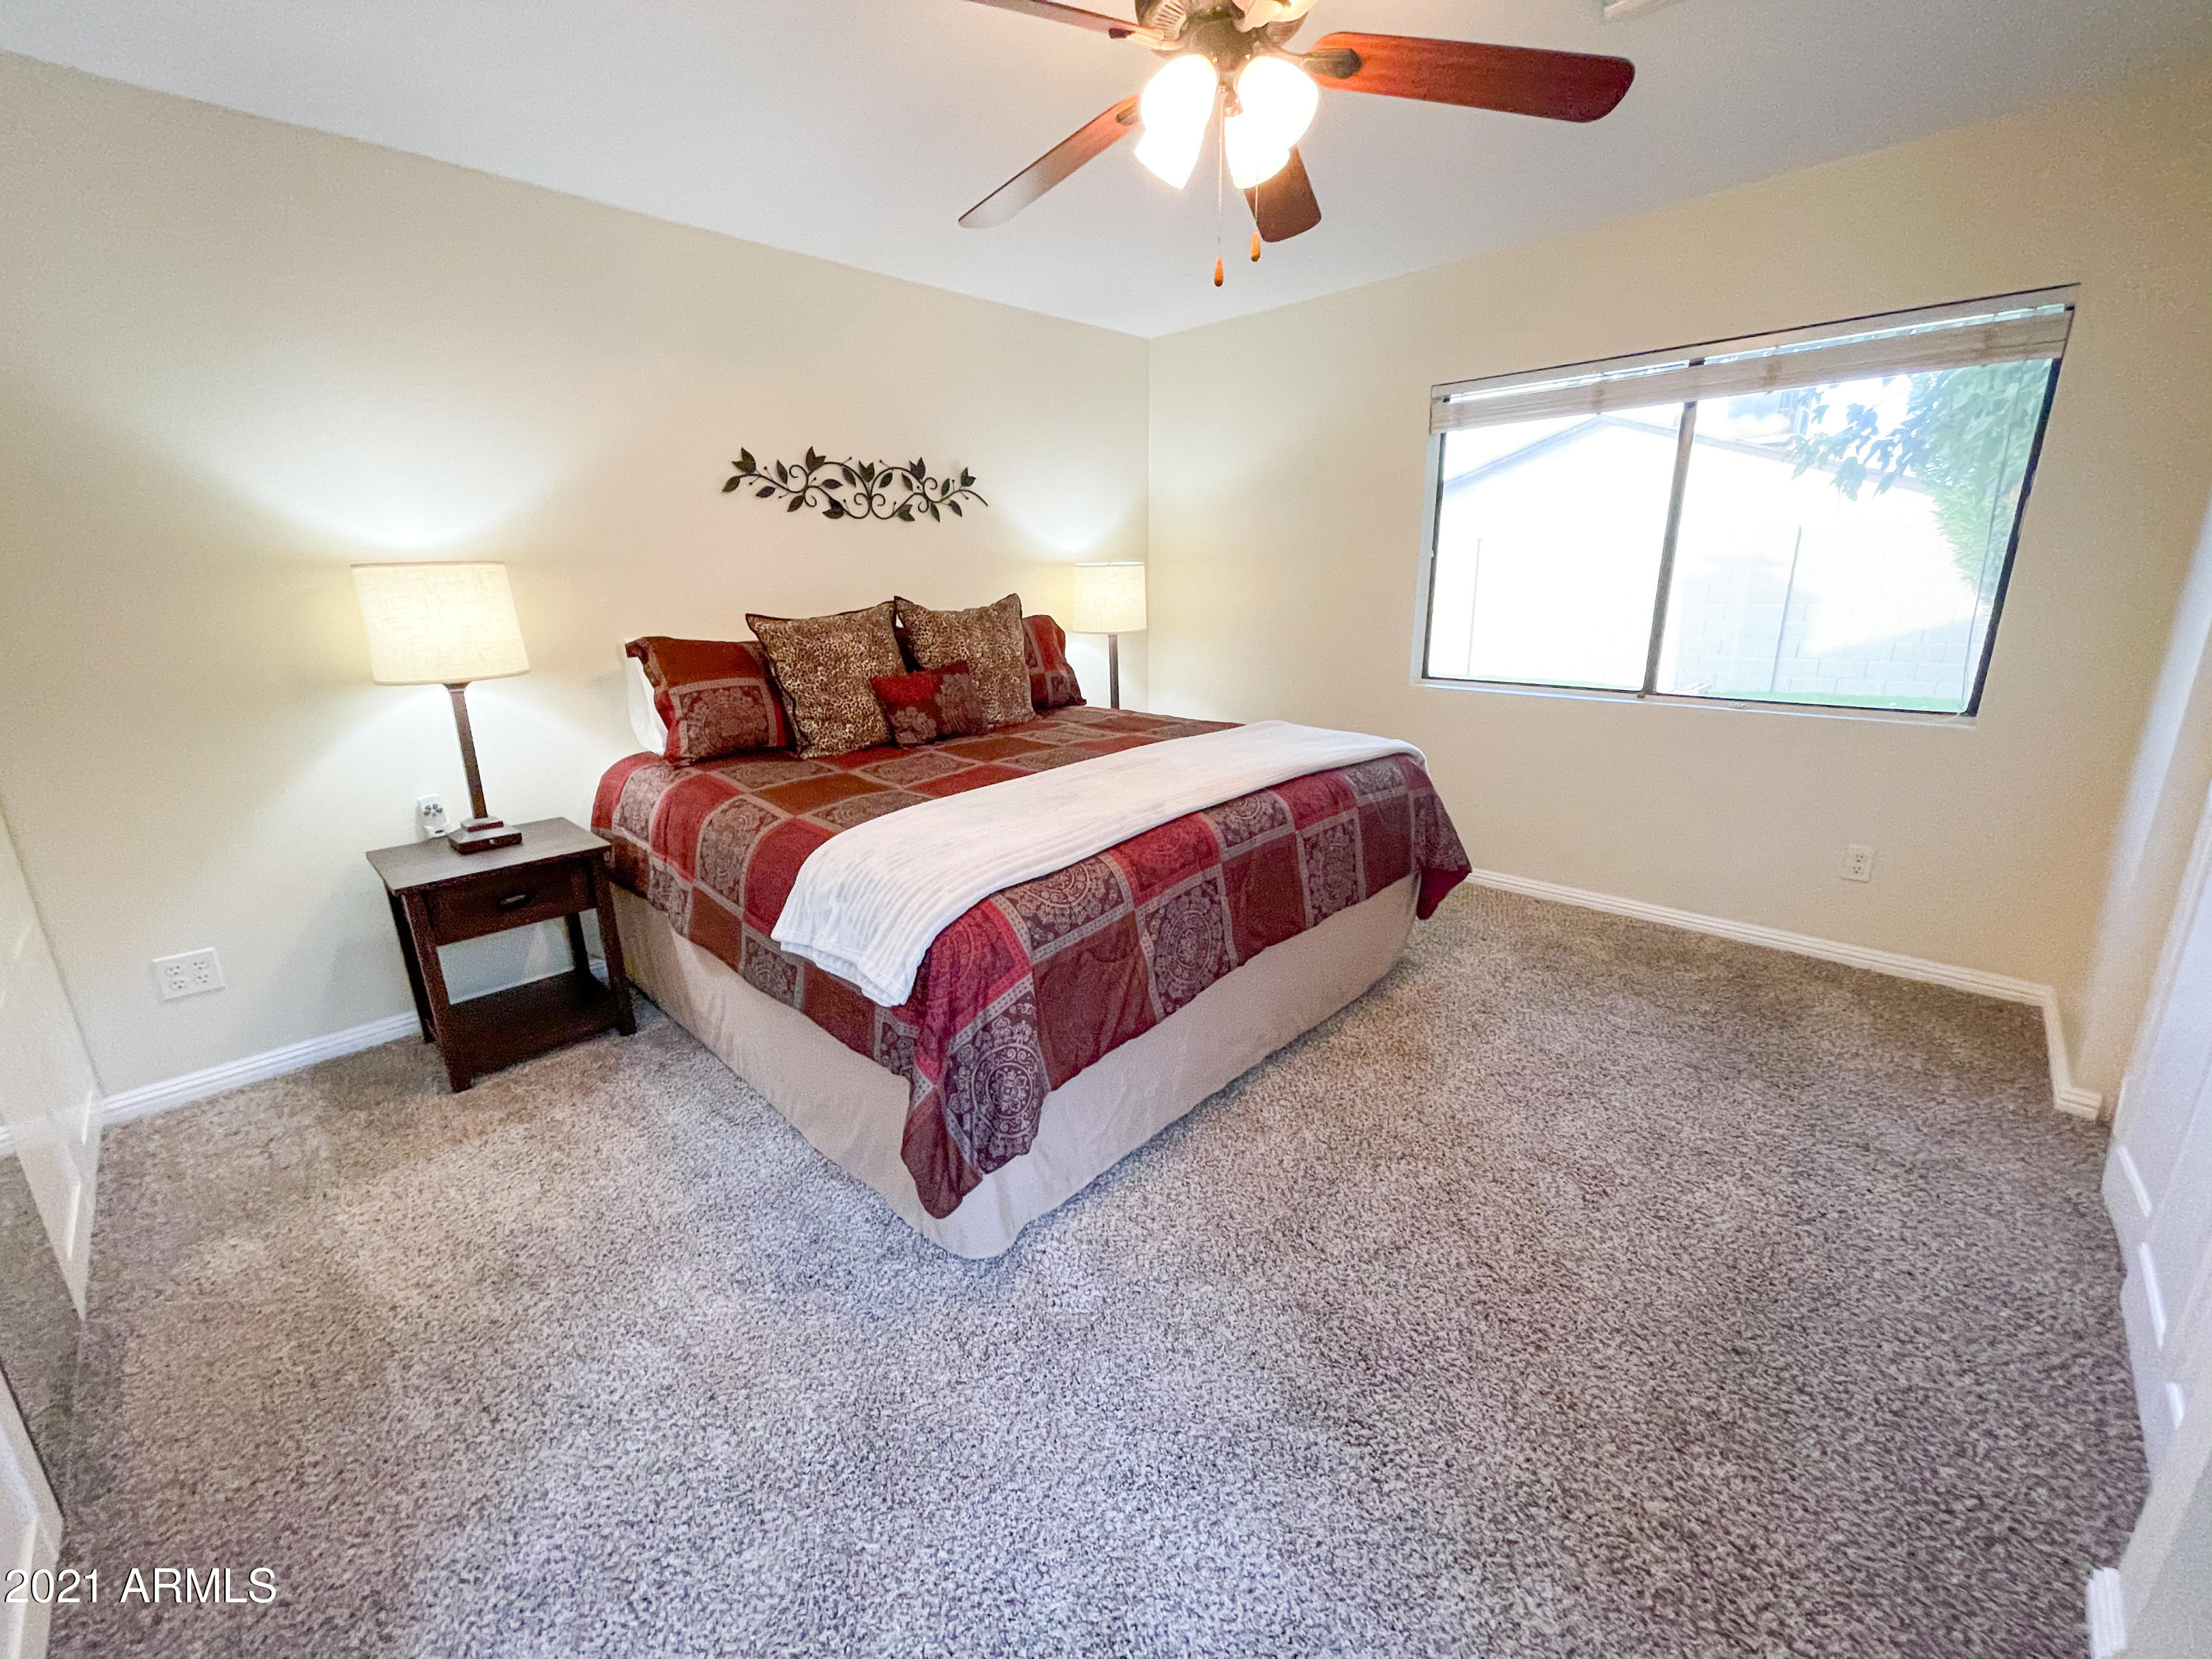 17602 42ND Place, Phoenix, Arizona 85032, 6 Bedrooms Bedrooms, ,3 BathroomsBathrooms,Residential Rental,For Rent,42ND,6228881